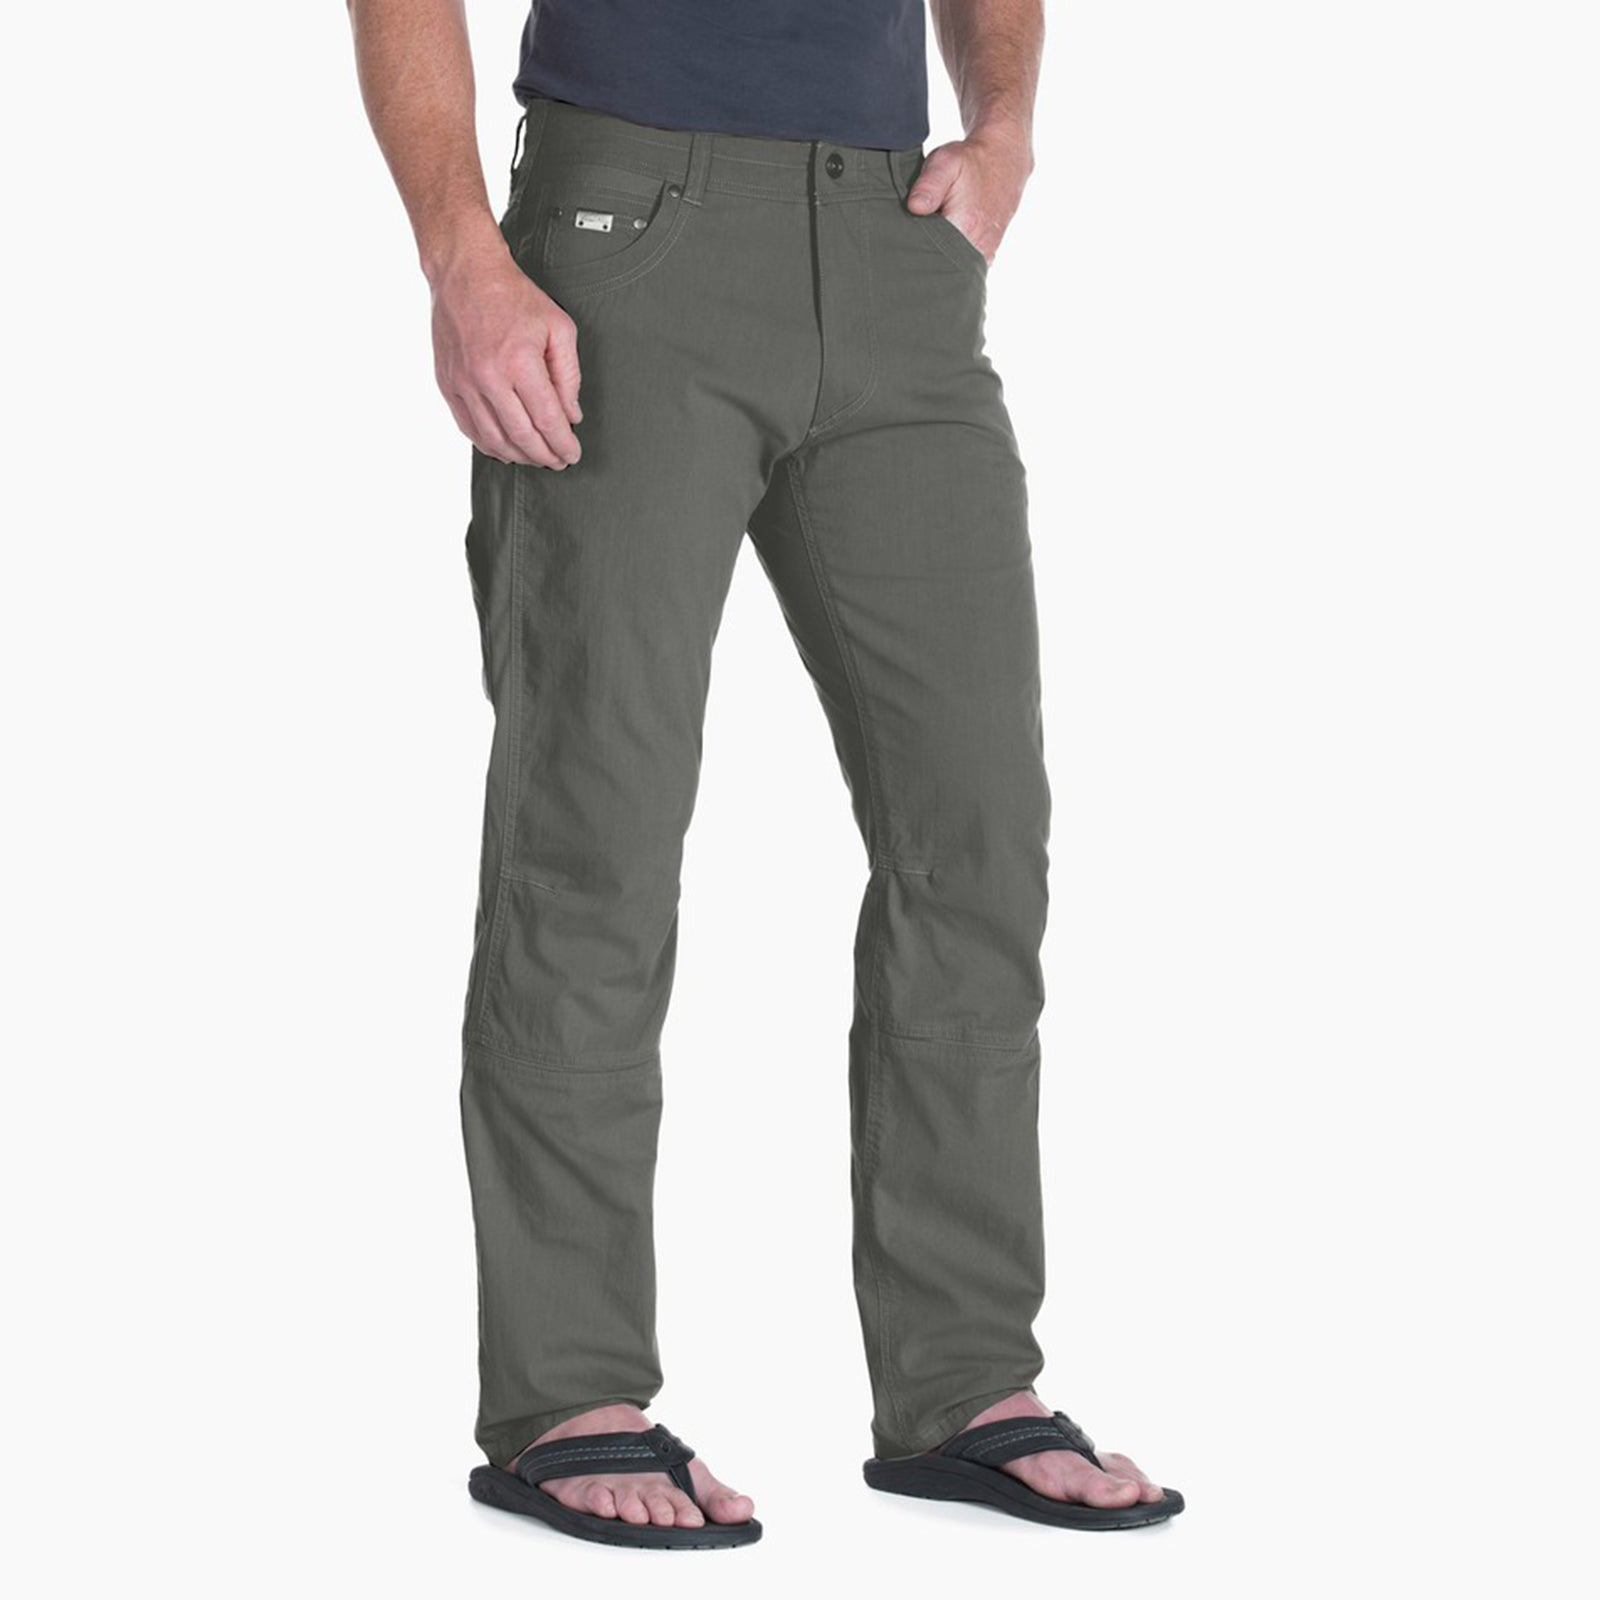 kuhl radikl pants mens on model front view in color green